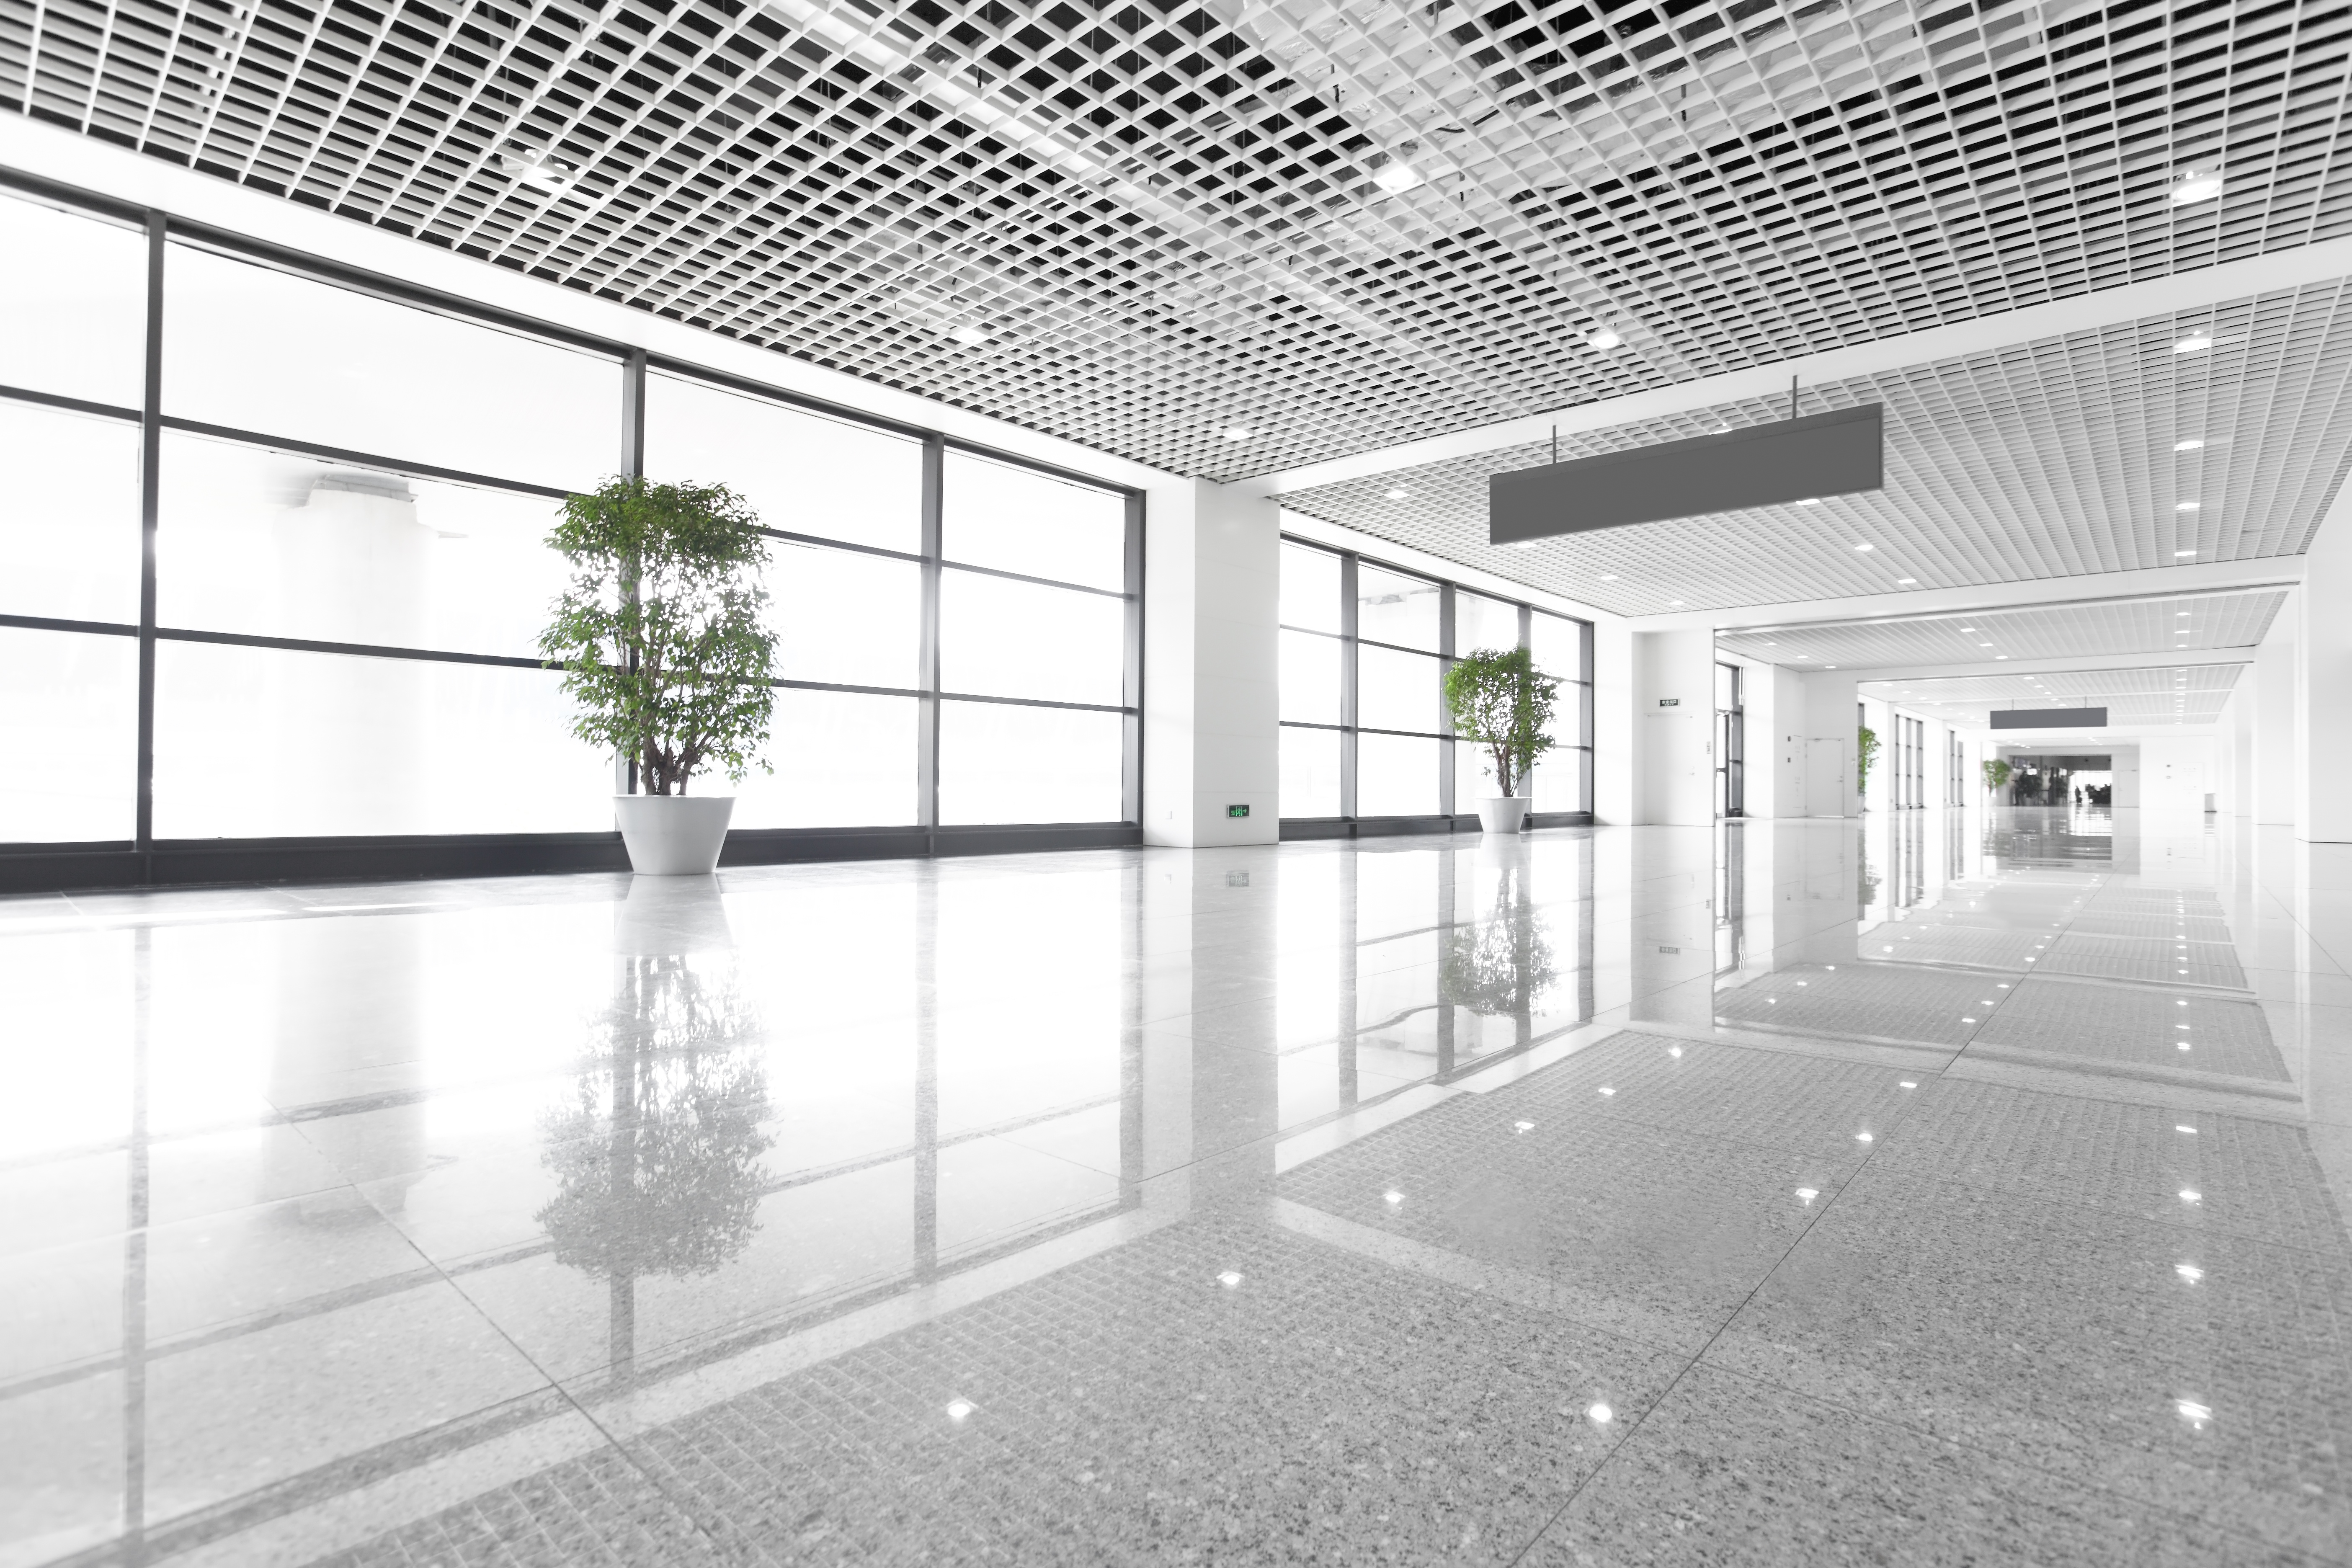 3 Reasons It Is Important to Have Clean Floors